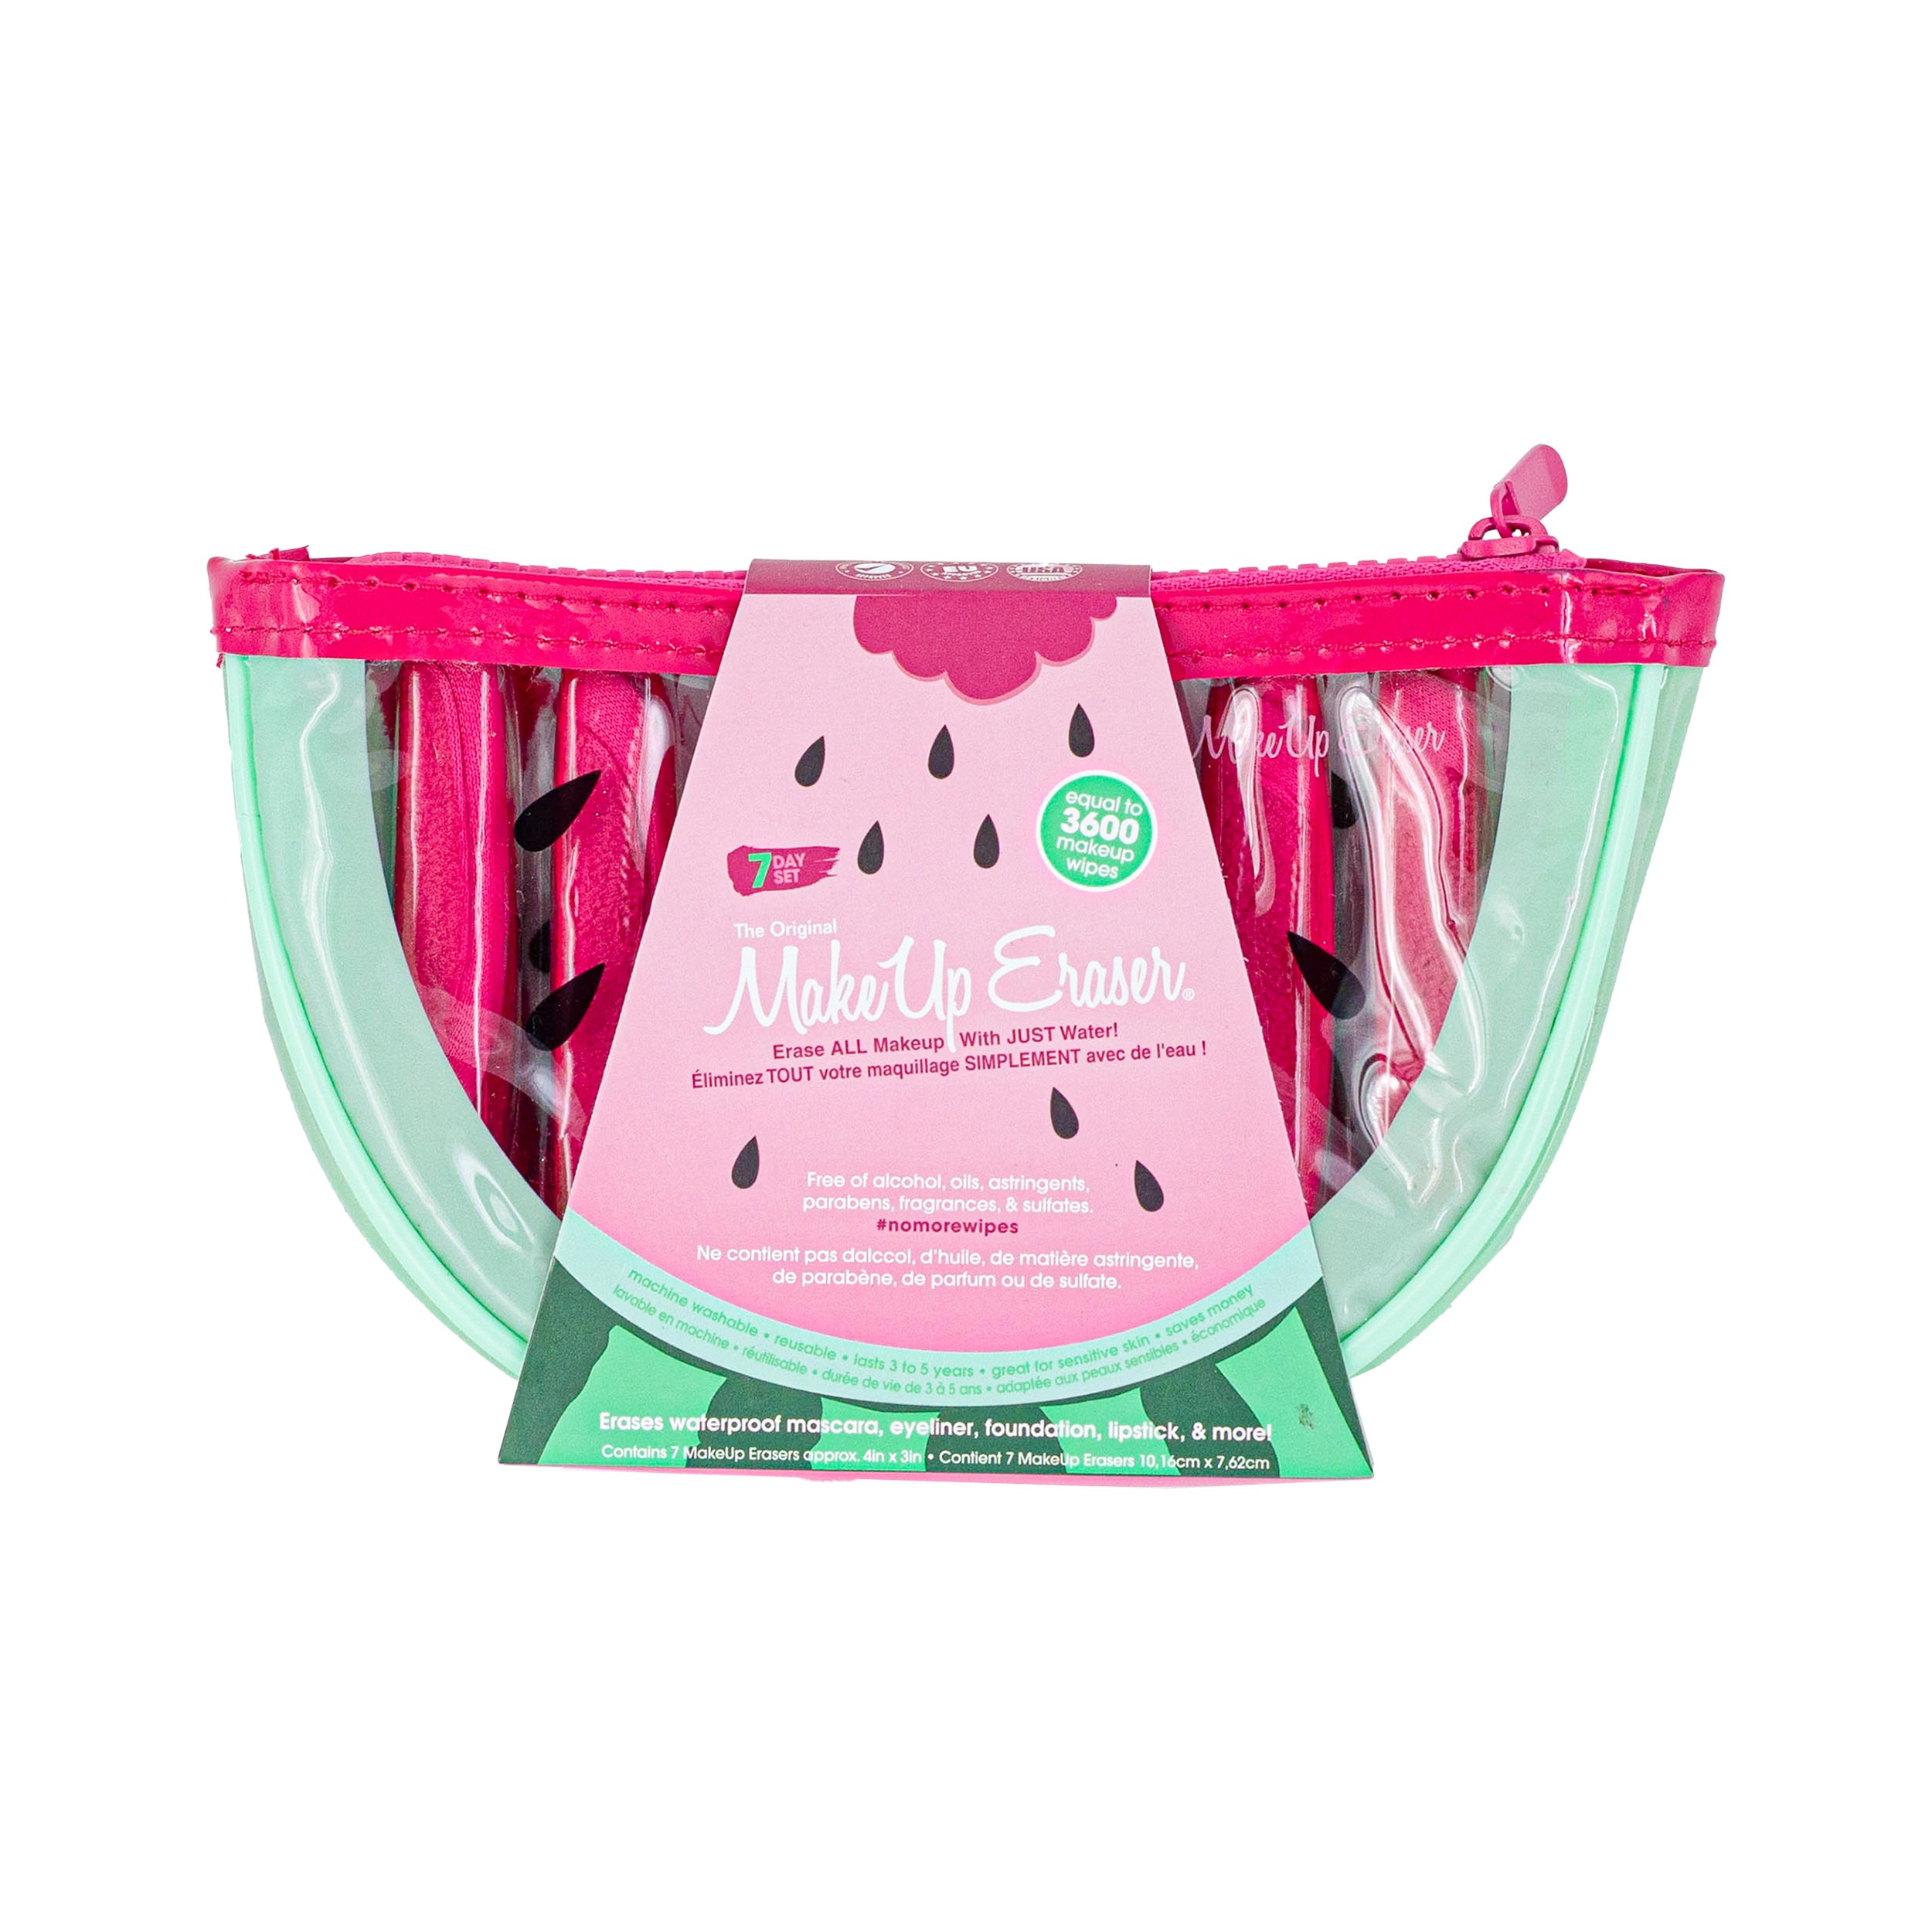 Makeup Eraser 7 - Day Watermelon Set